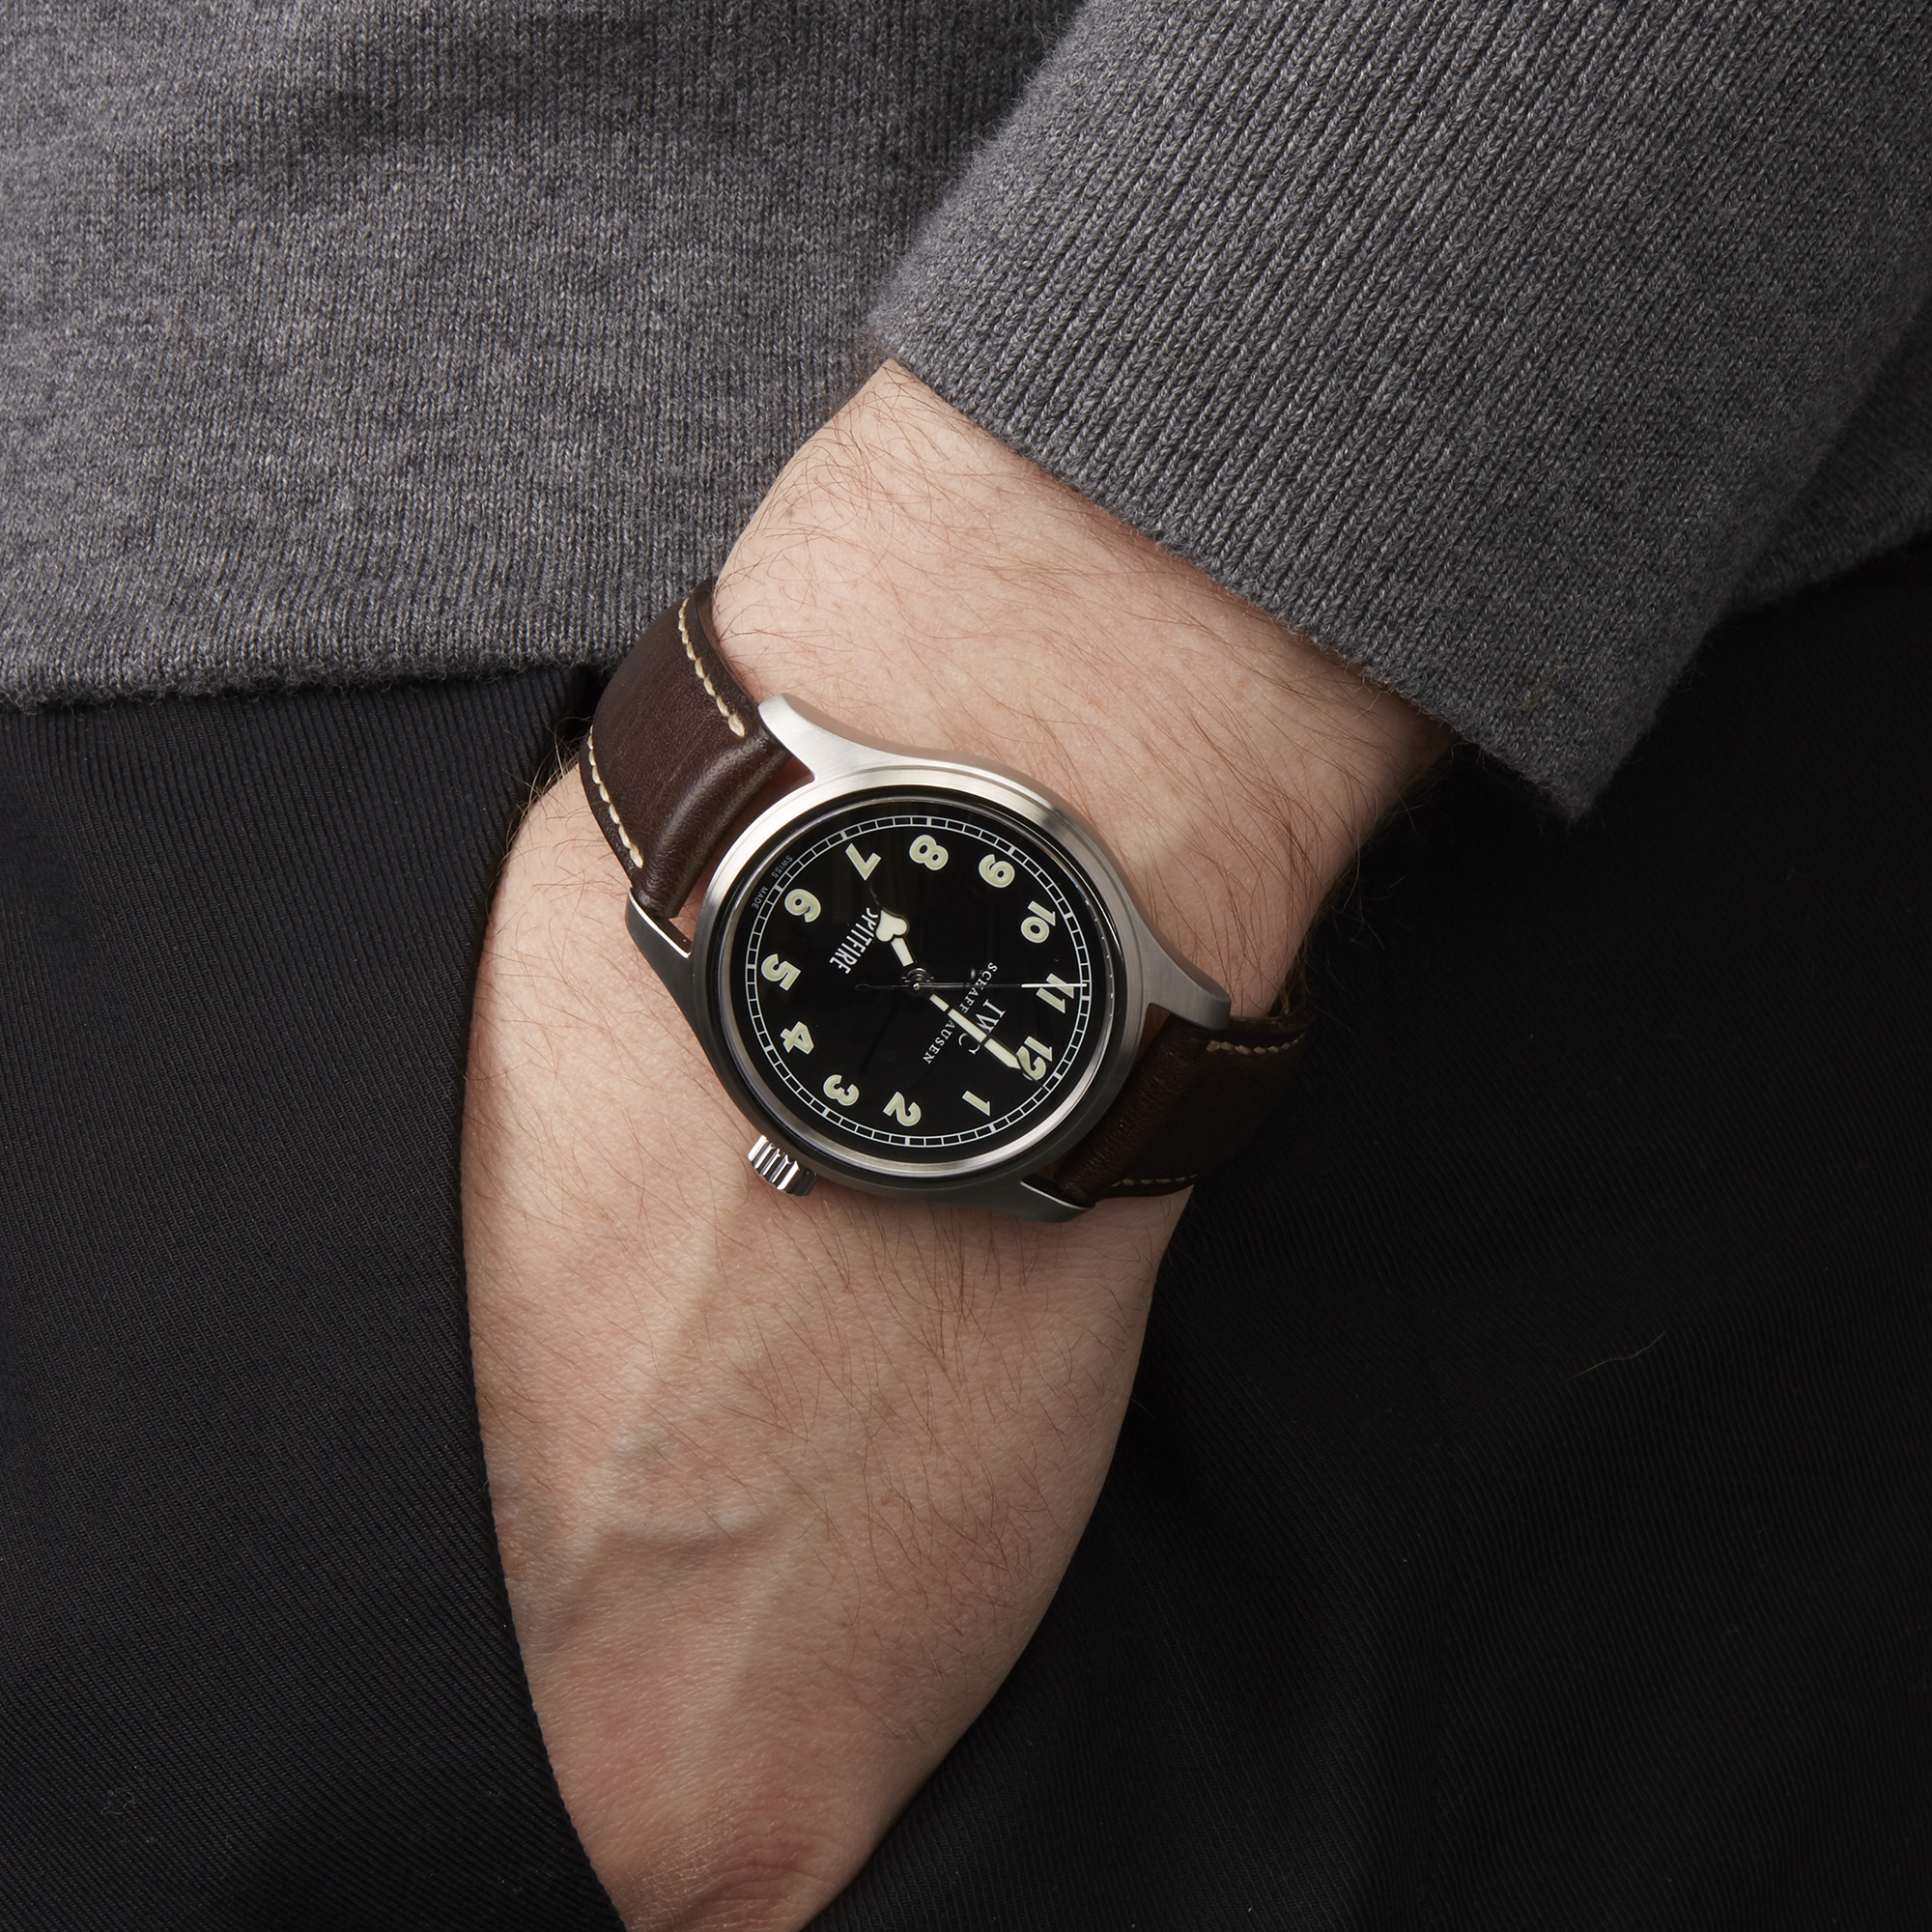 Pilot's Spitfire IW325305 Men Stainless Steel MK XV Limited Edition of 1000 pieces Watch - Image 2 of 10